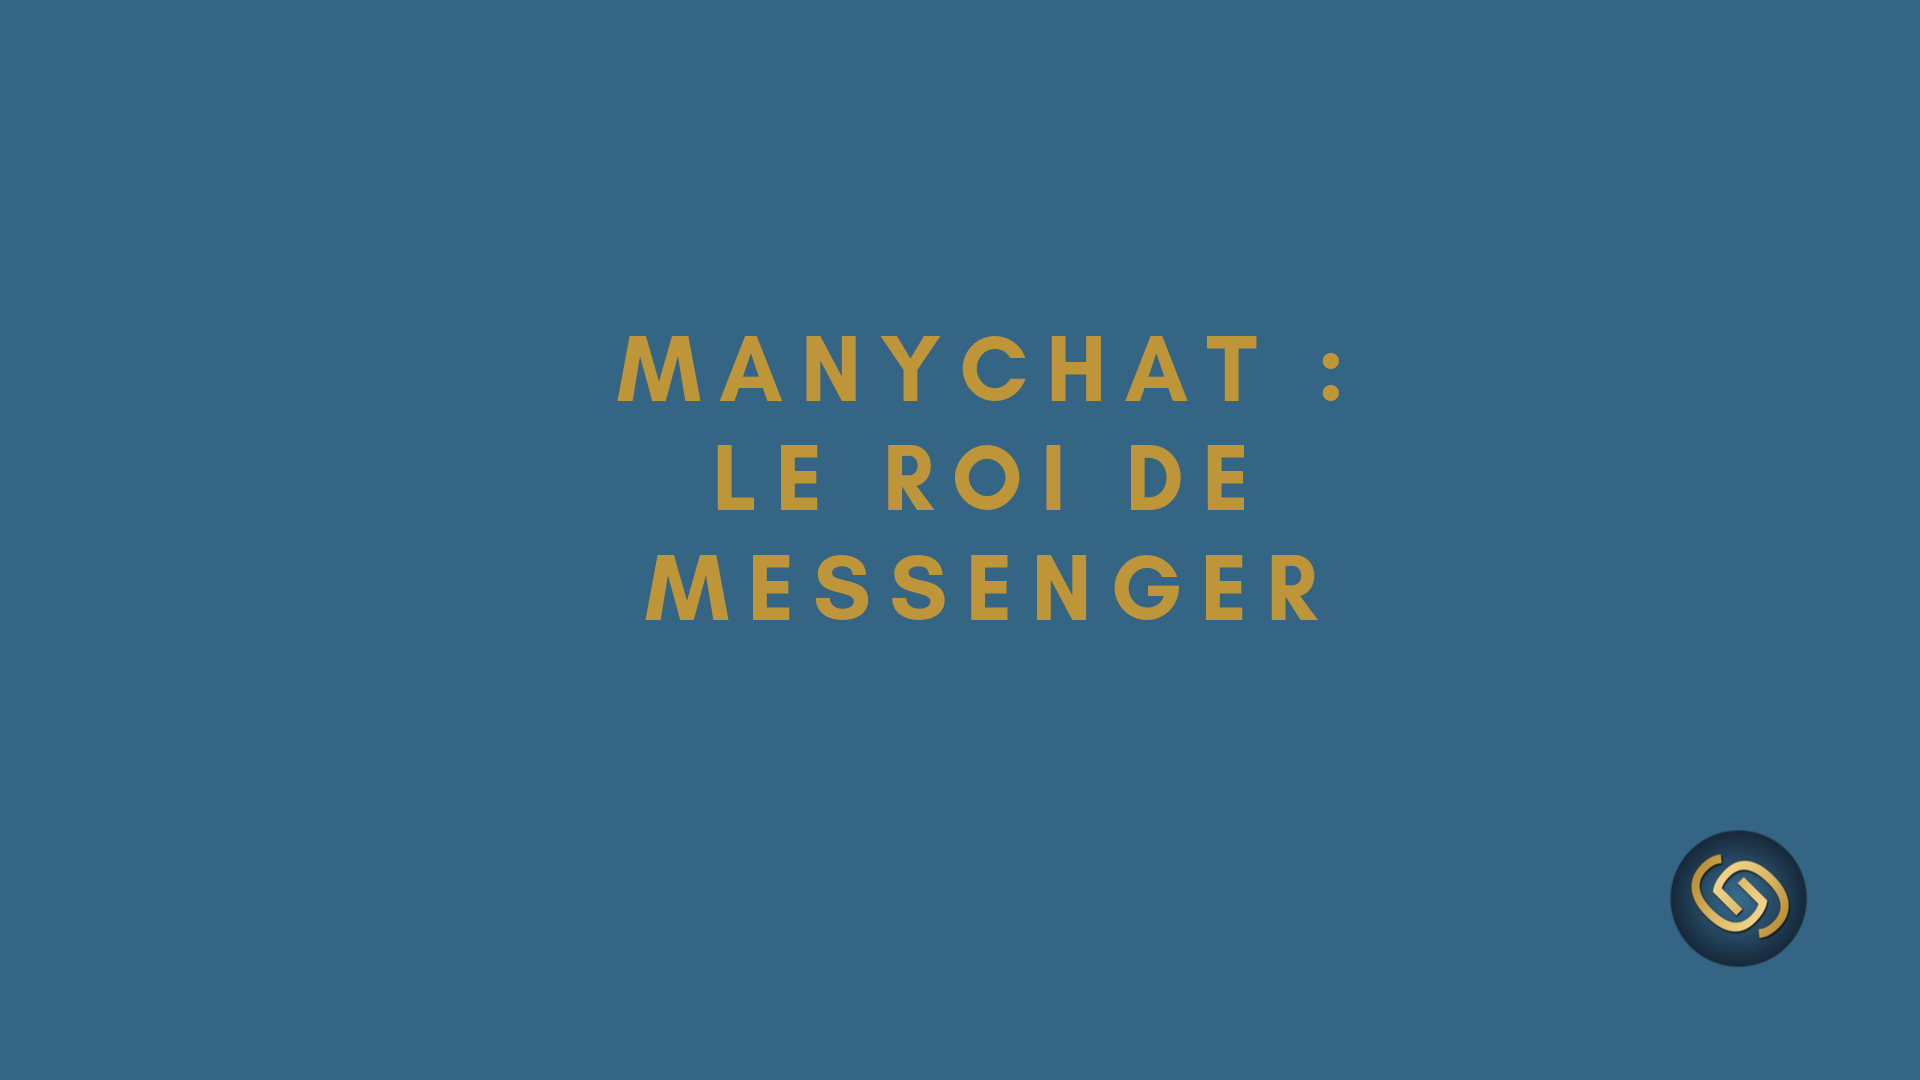 manychat messenger